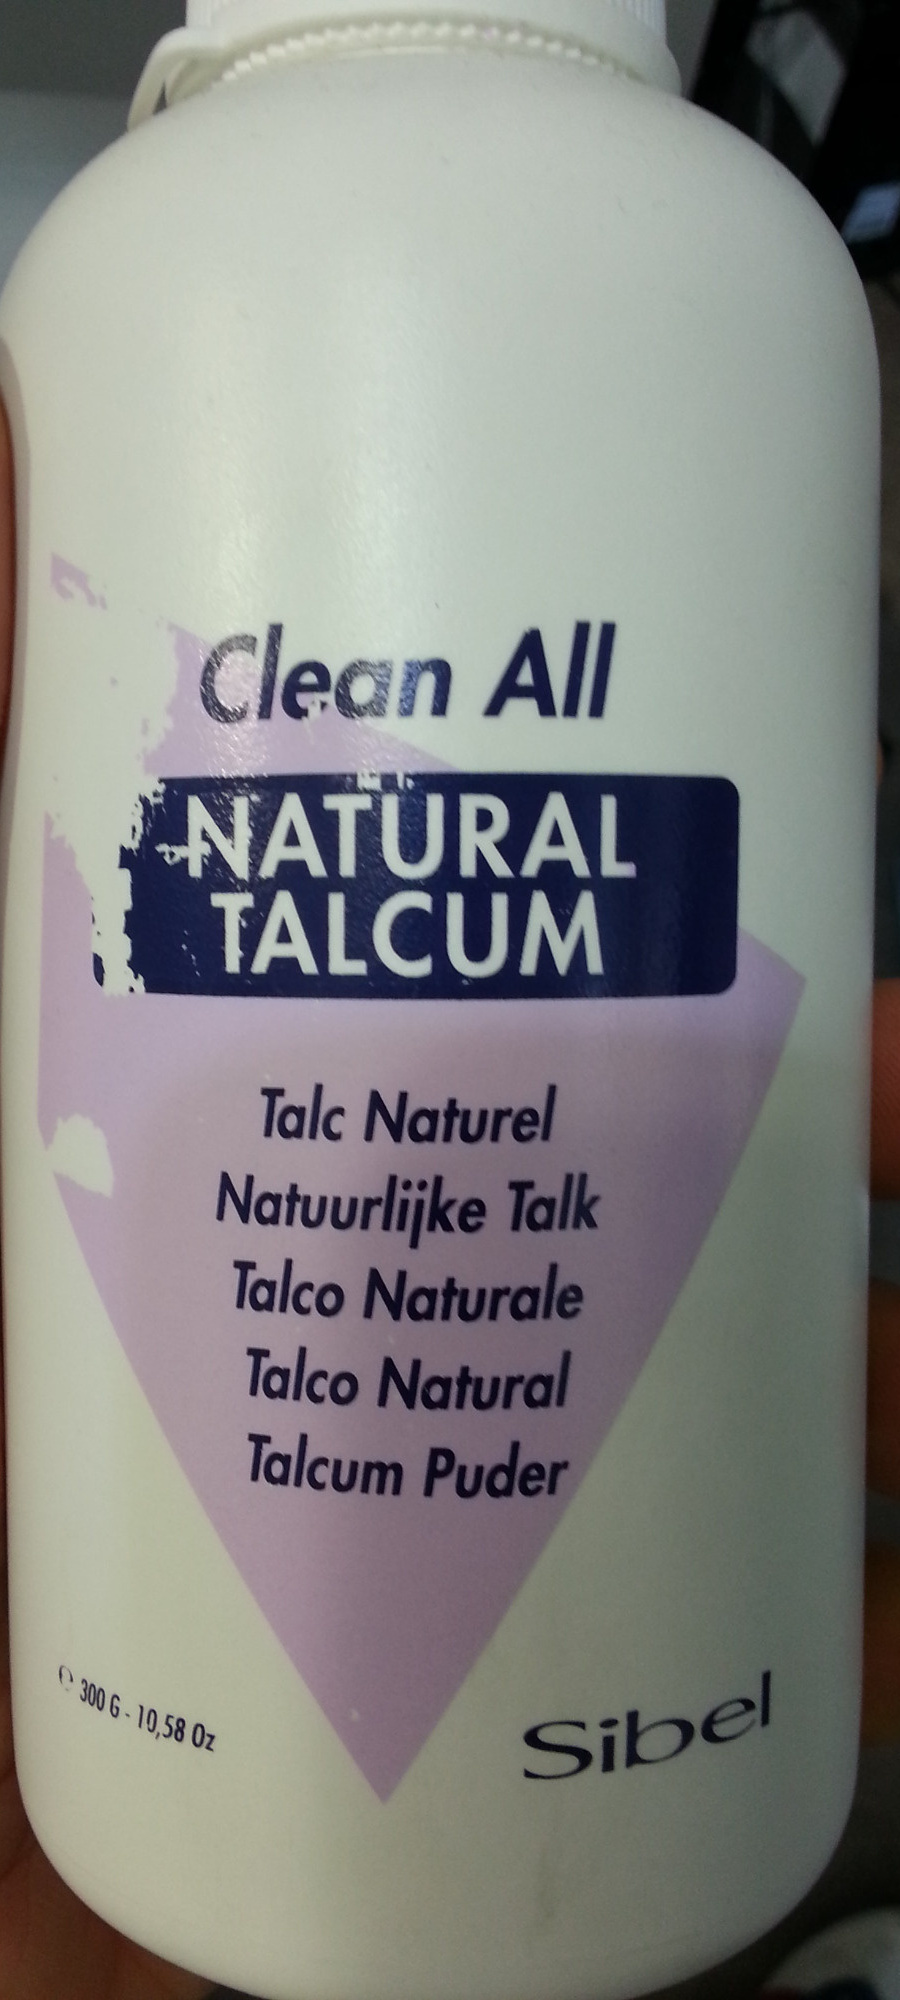 Natural Talcum - Product - fr